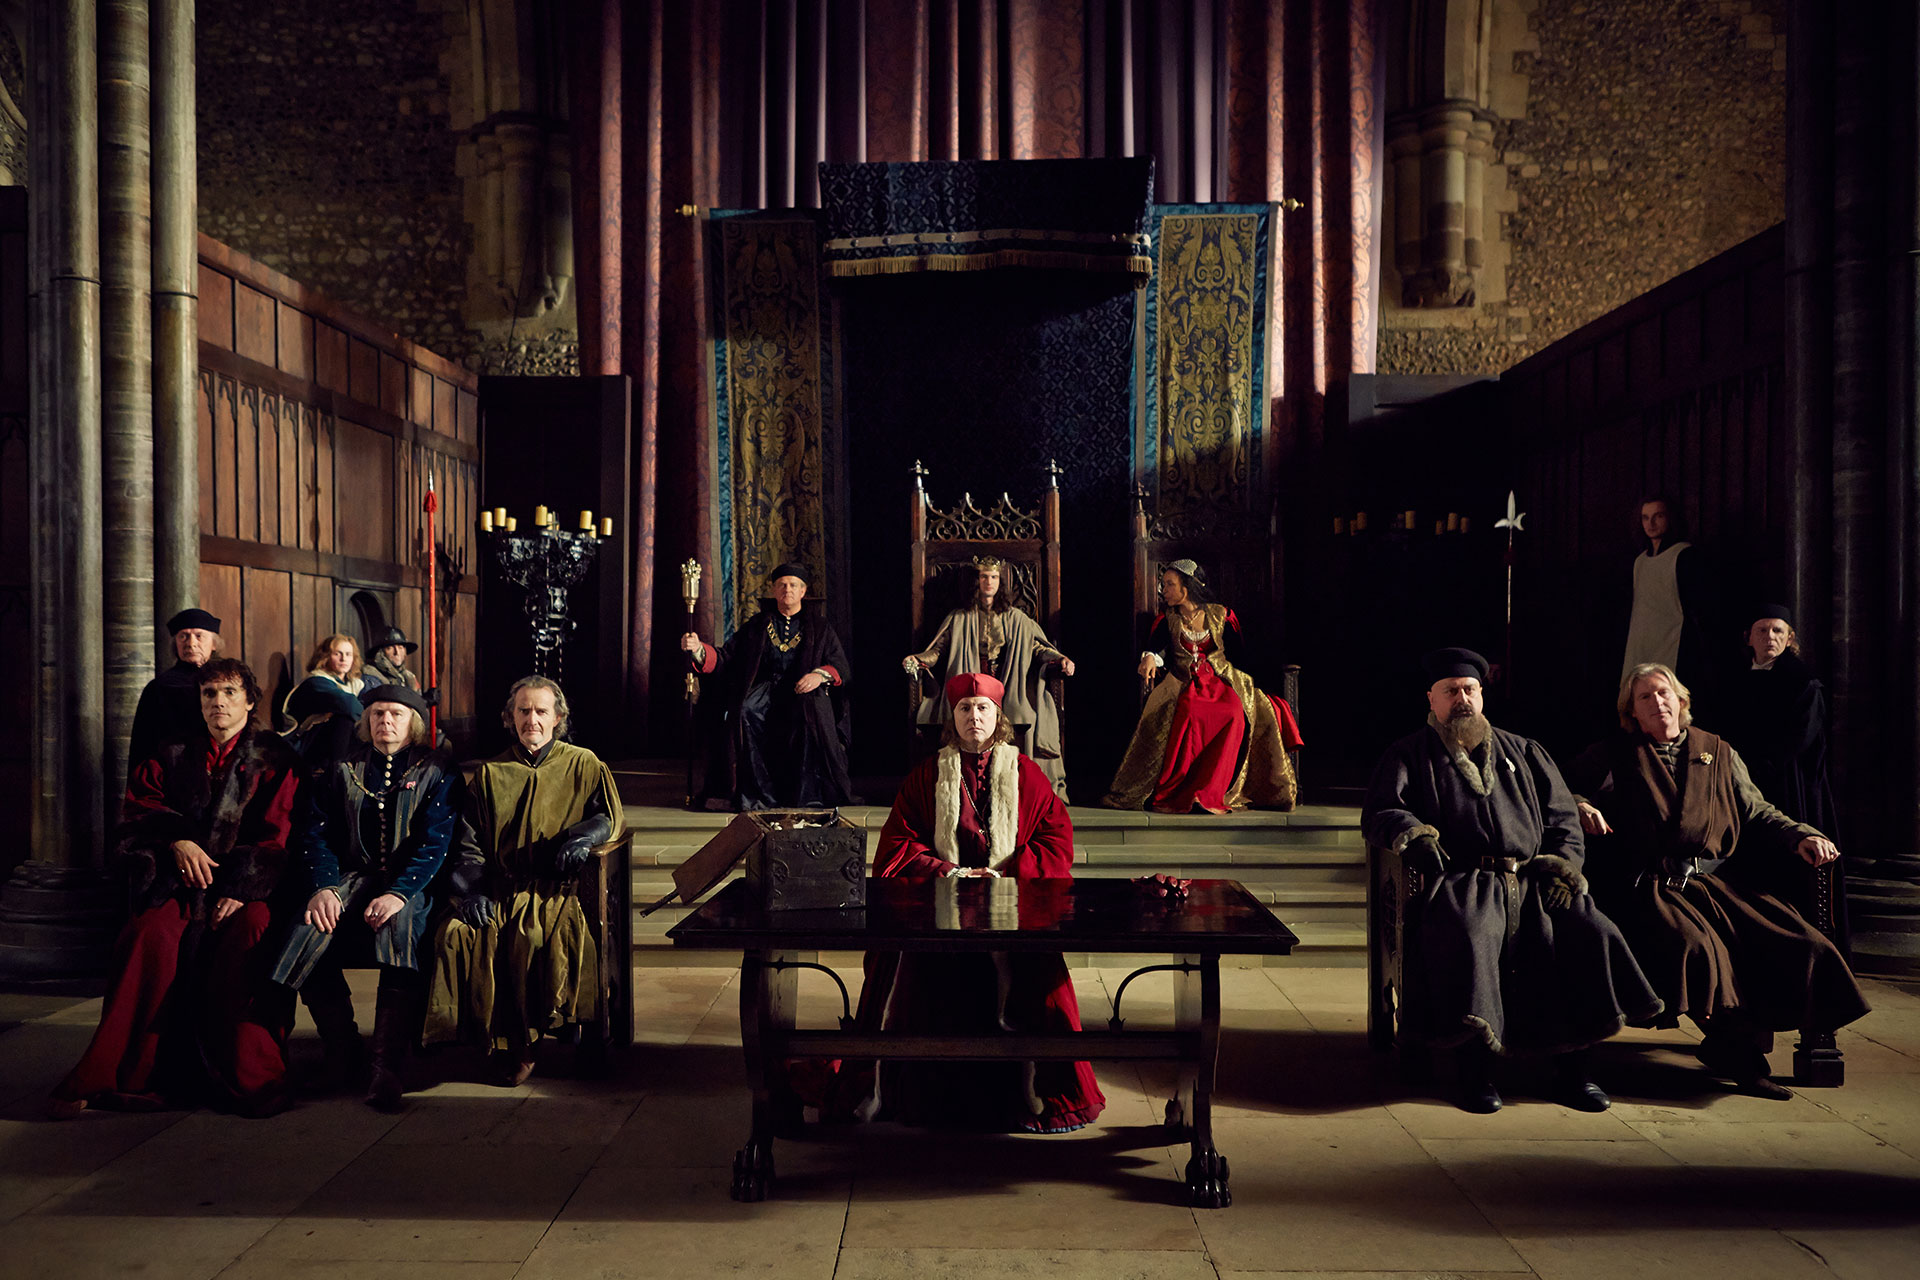 "(From l to r) Ben Miles (as SOMERSET), Jason Watkins (as SUFFOLK), Anton Lesser (as EXETER), Hugh Bonneville (as GLOUCESTER), Tom Sturridge (as HENRY VI), Samuel West (as BISHOP OF WINCHESTER), Sophie Okonedo (as MARGARET), Stanley Townsend (as WARWICK) and Adrian Dunbar (as PLANTAGENET) in ""The Hollow Crown: The Wars of the Roses Henry VI (Part I)."" Credit: Robert Viglasky © 2015 Carnival Film & Television Ltd"